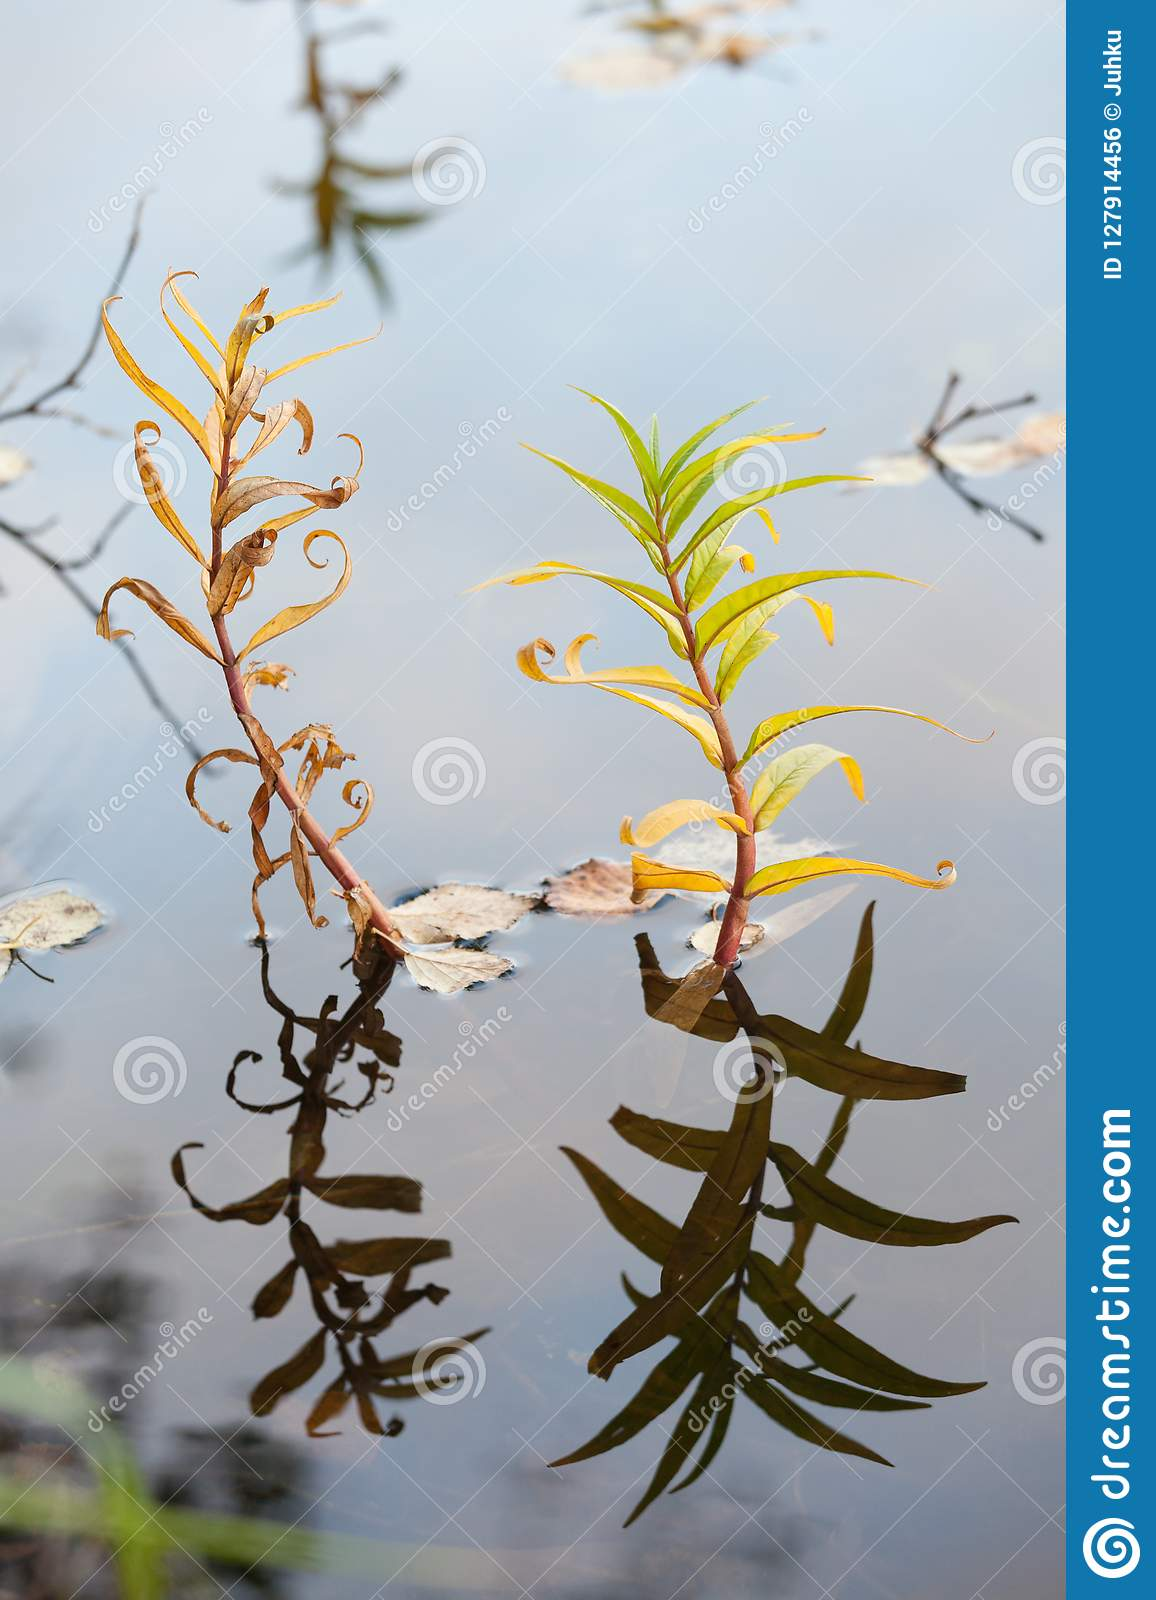 Plant growing in lake